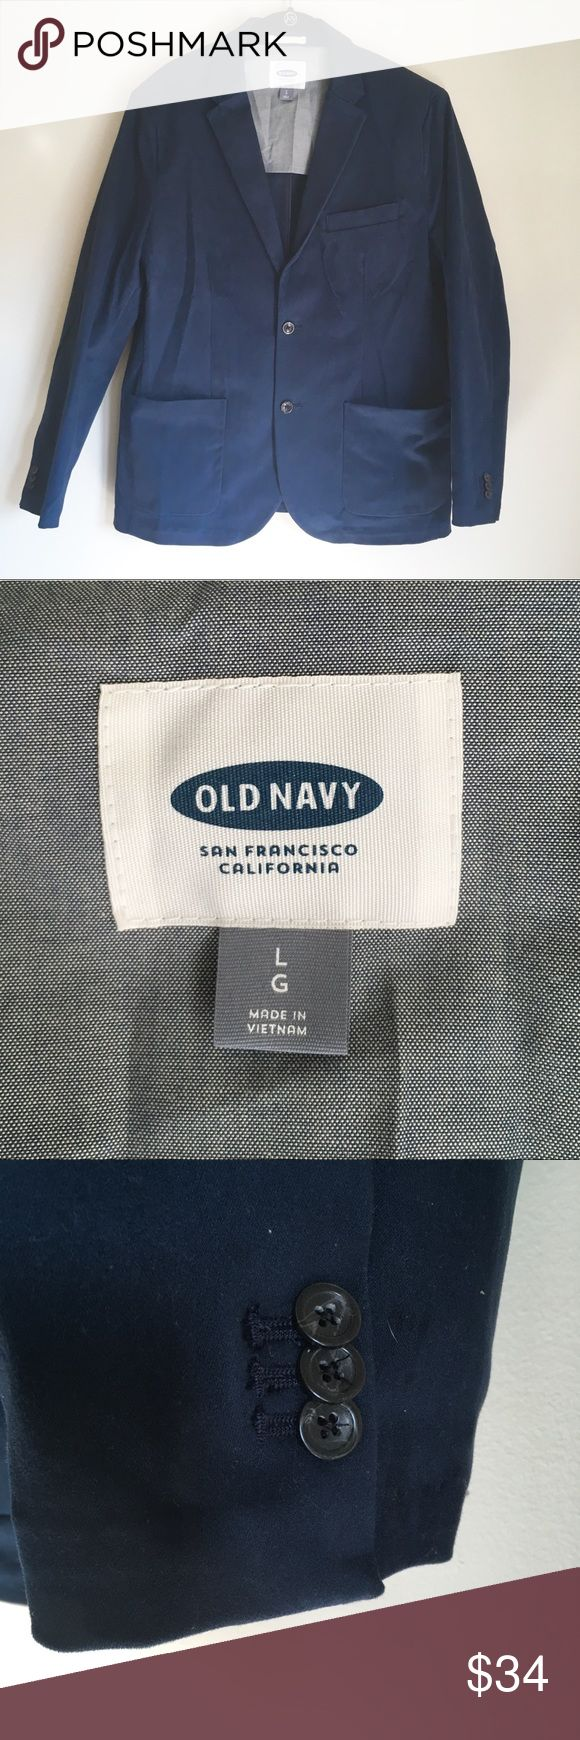 Old Navy casual blazer navy blue sports jacket Old Navy men's blazer in navy blue. Old Navy casual blazer in ink blue. Old Navy sports jacket. Size large. Worn one time. Has double button closure, and two open pockets at the waist with one open pocket on the chest. A soft velvet-y feeling material. The shell is 98% cotton and 2% spandex and the body lining is 100% cotton. Bundle to save! Old Navy Suits & Blazers Sport Coats & Blazers